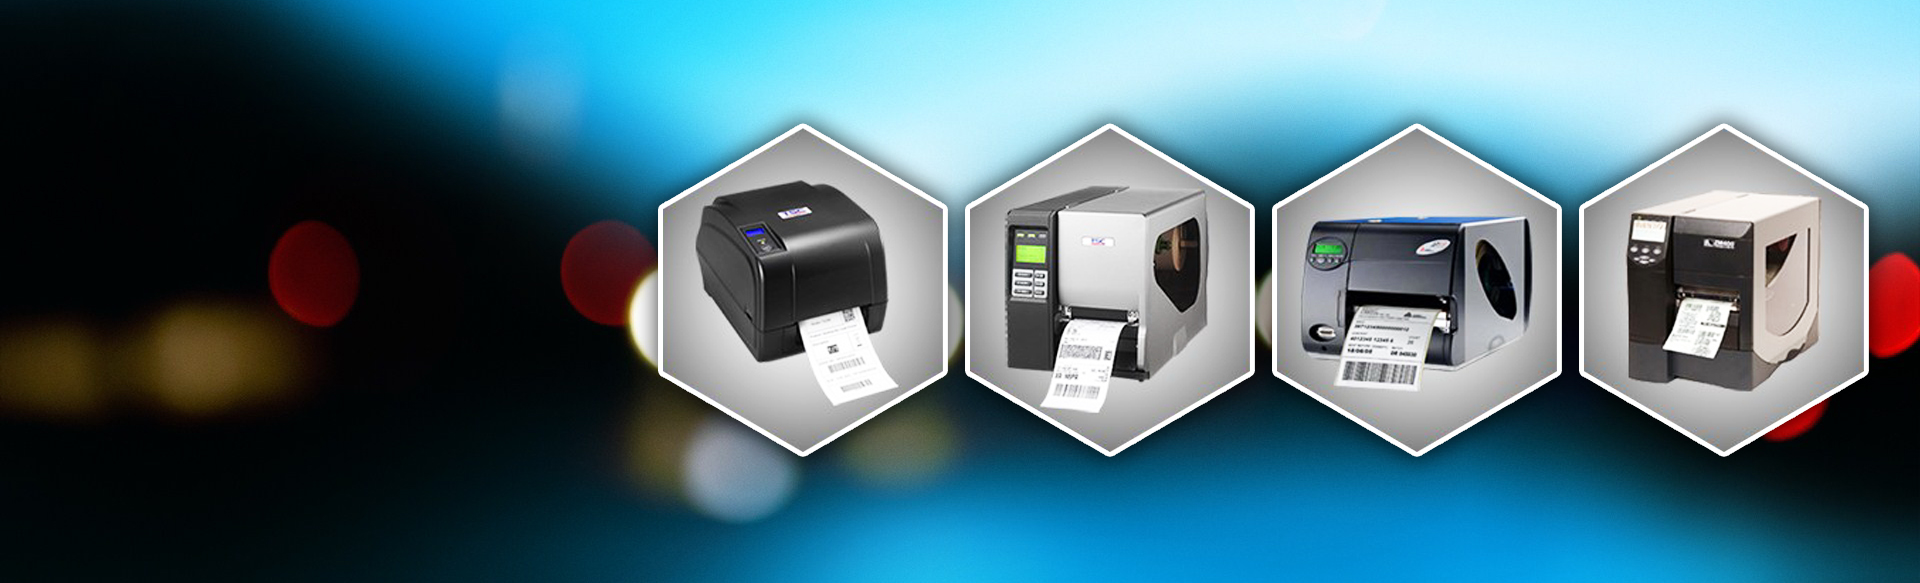 Thermal Barcode Printer